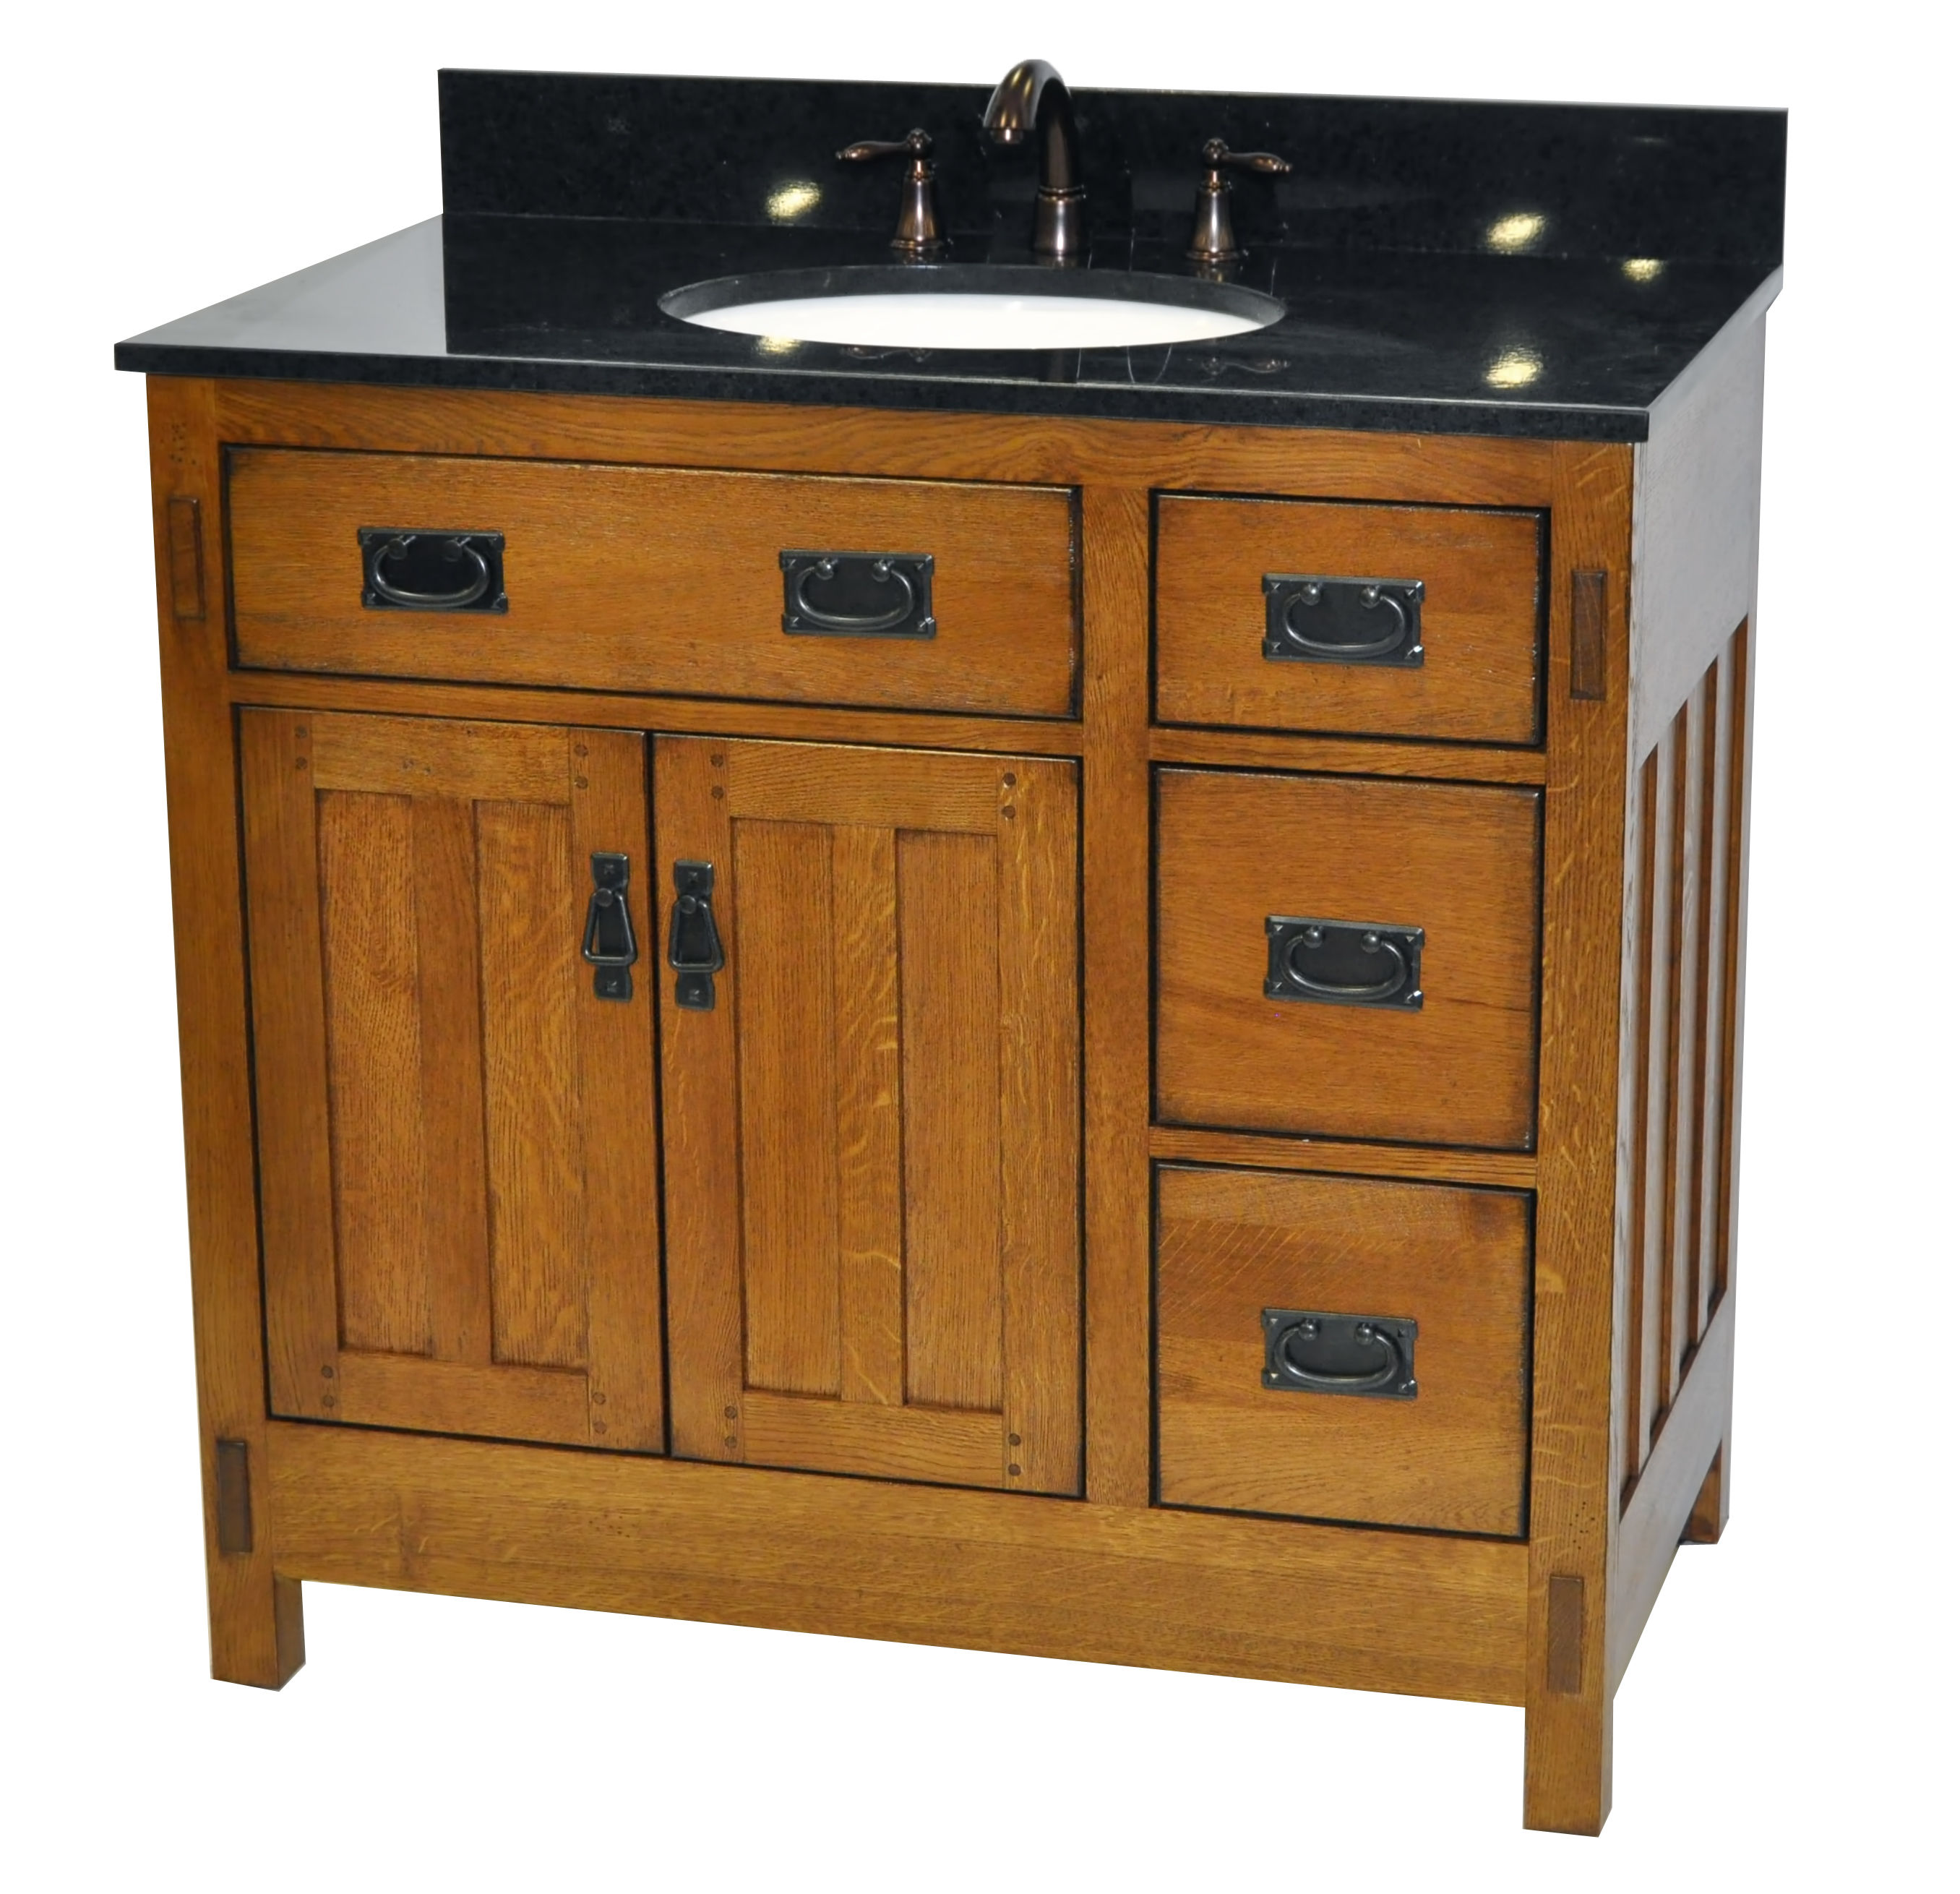 Sagehill Designs Ac3621dn Rustic Oak American Craftsman 36 Vanity Cabinet Only Faucet